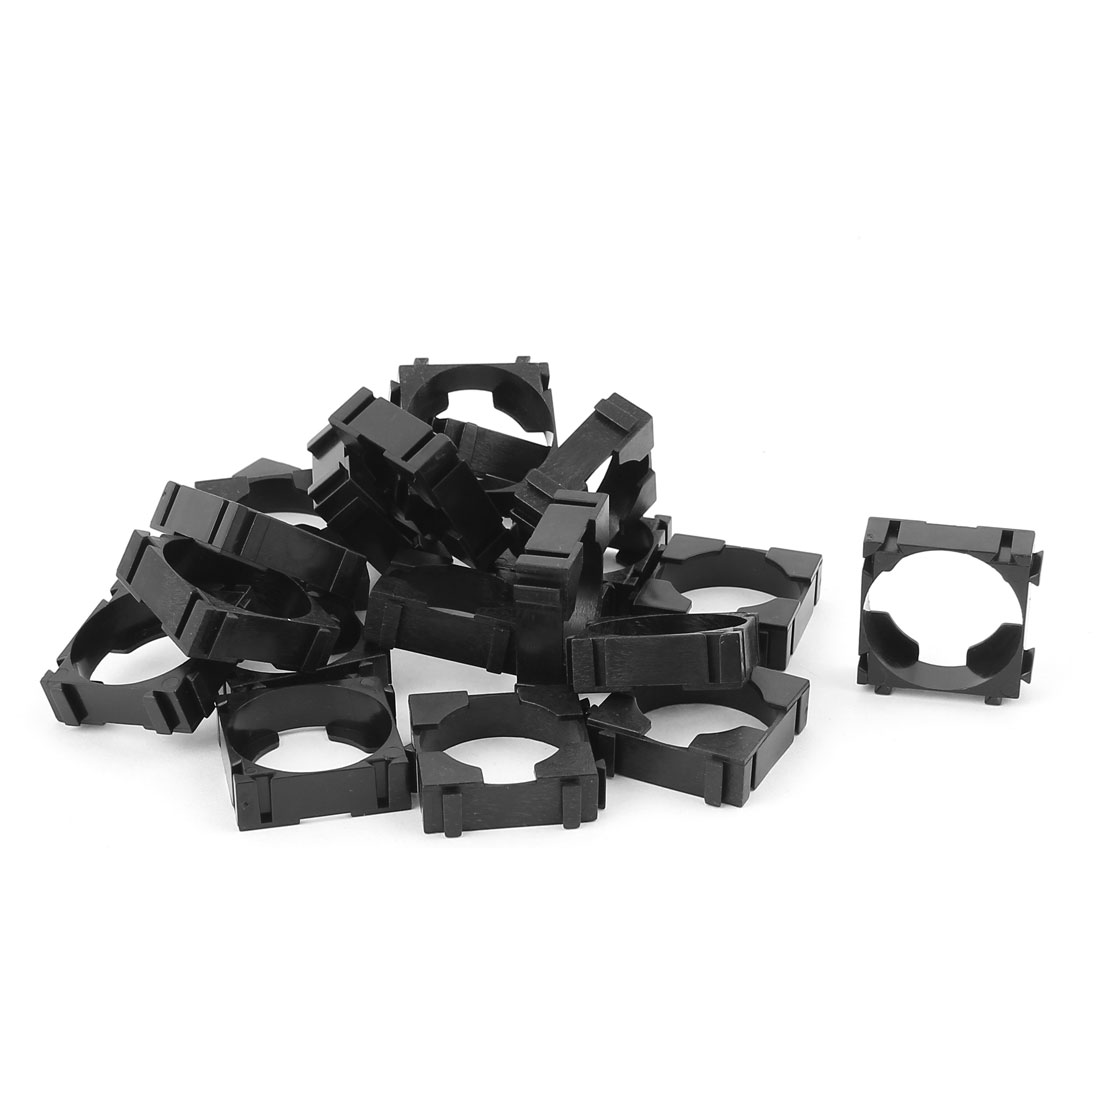 20 Pcs 26650 Lithium Ion Cell Battery Holder Bracket for DIY Battery Pack